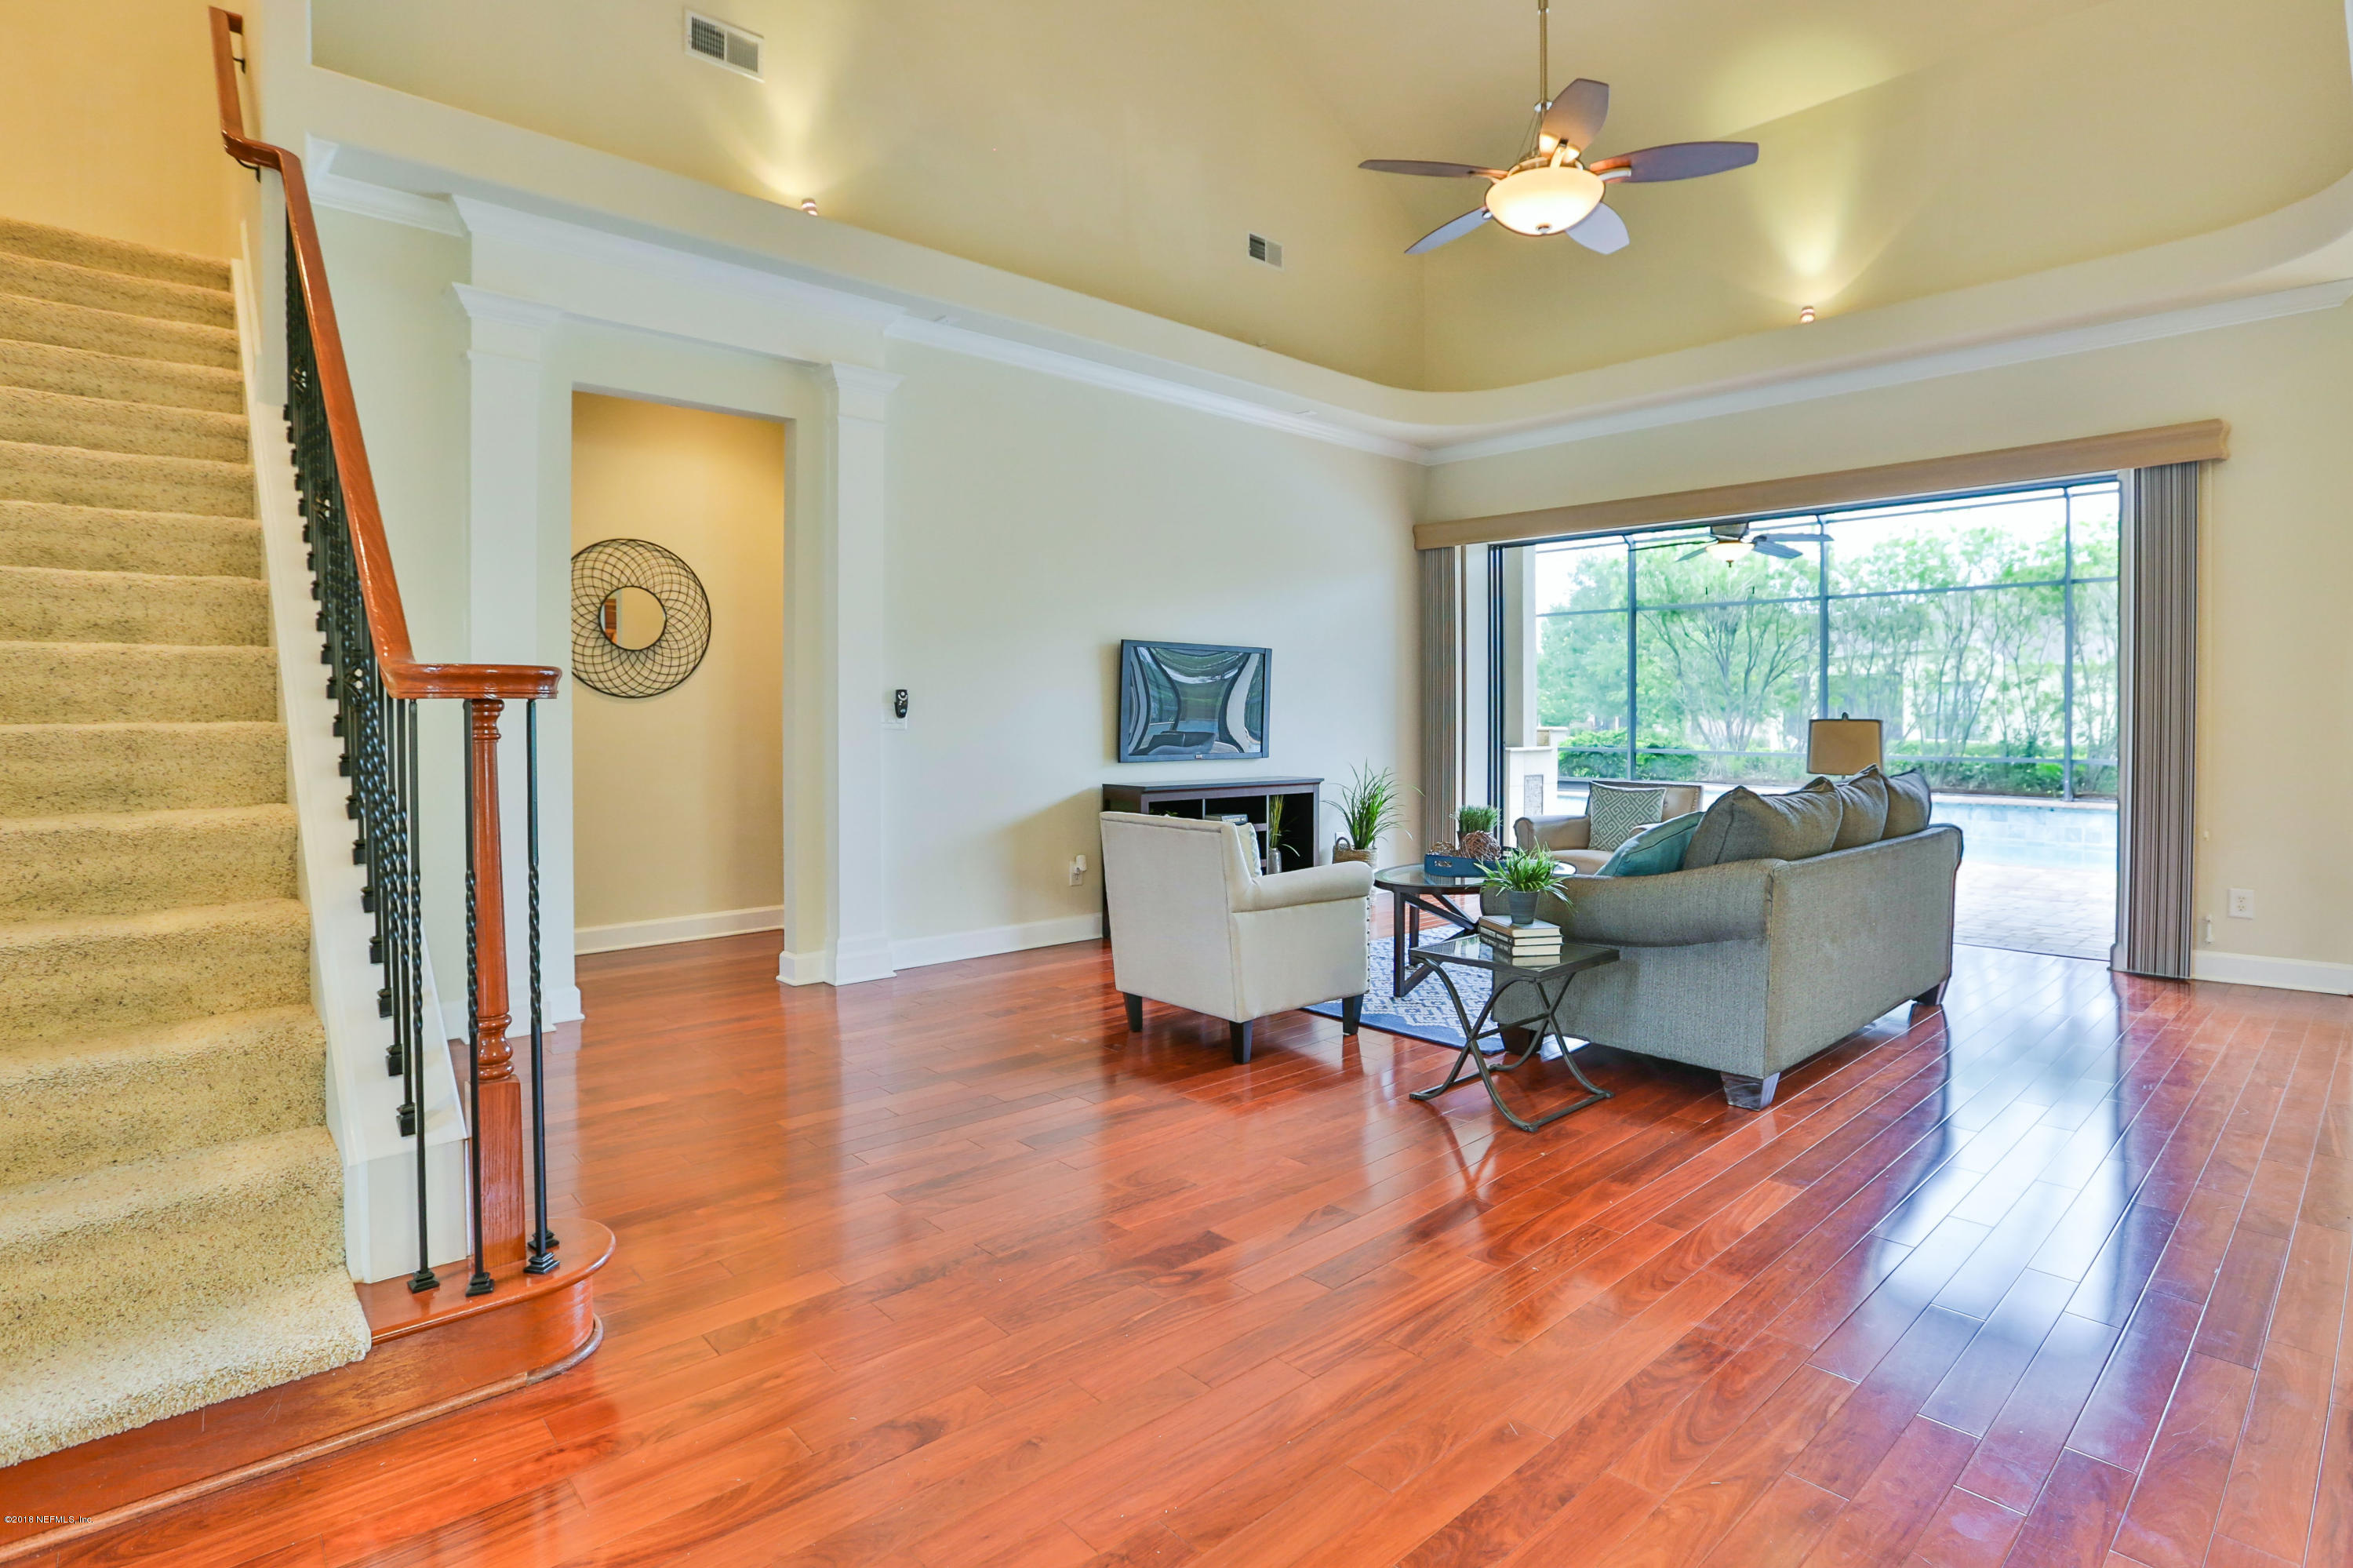 32 THICKET CREEK, PONTE VEDRA, FLORIDA 32081, 3 Bedrooms Bedrooms, ,2 BathroomsBathrooms,Residential - single family,For sale,THICKET CREEK,937519